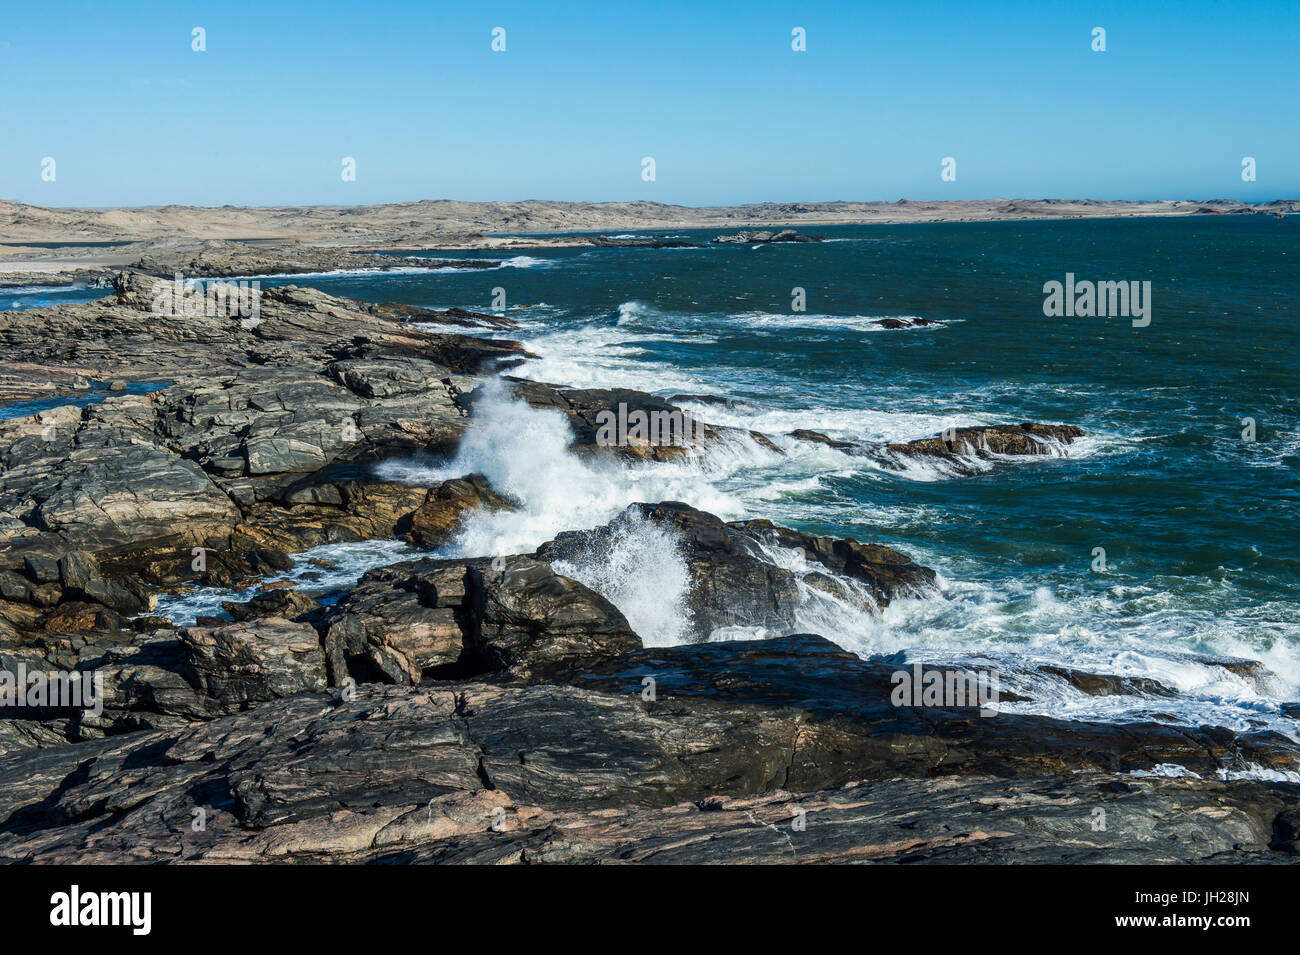 Wild Atlantic coastline on Dias Point, Luderitz, Namibia, Africa - Stock Image